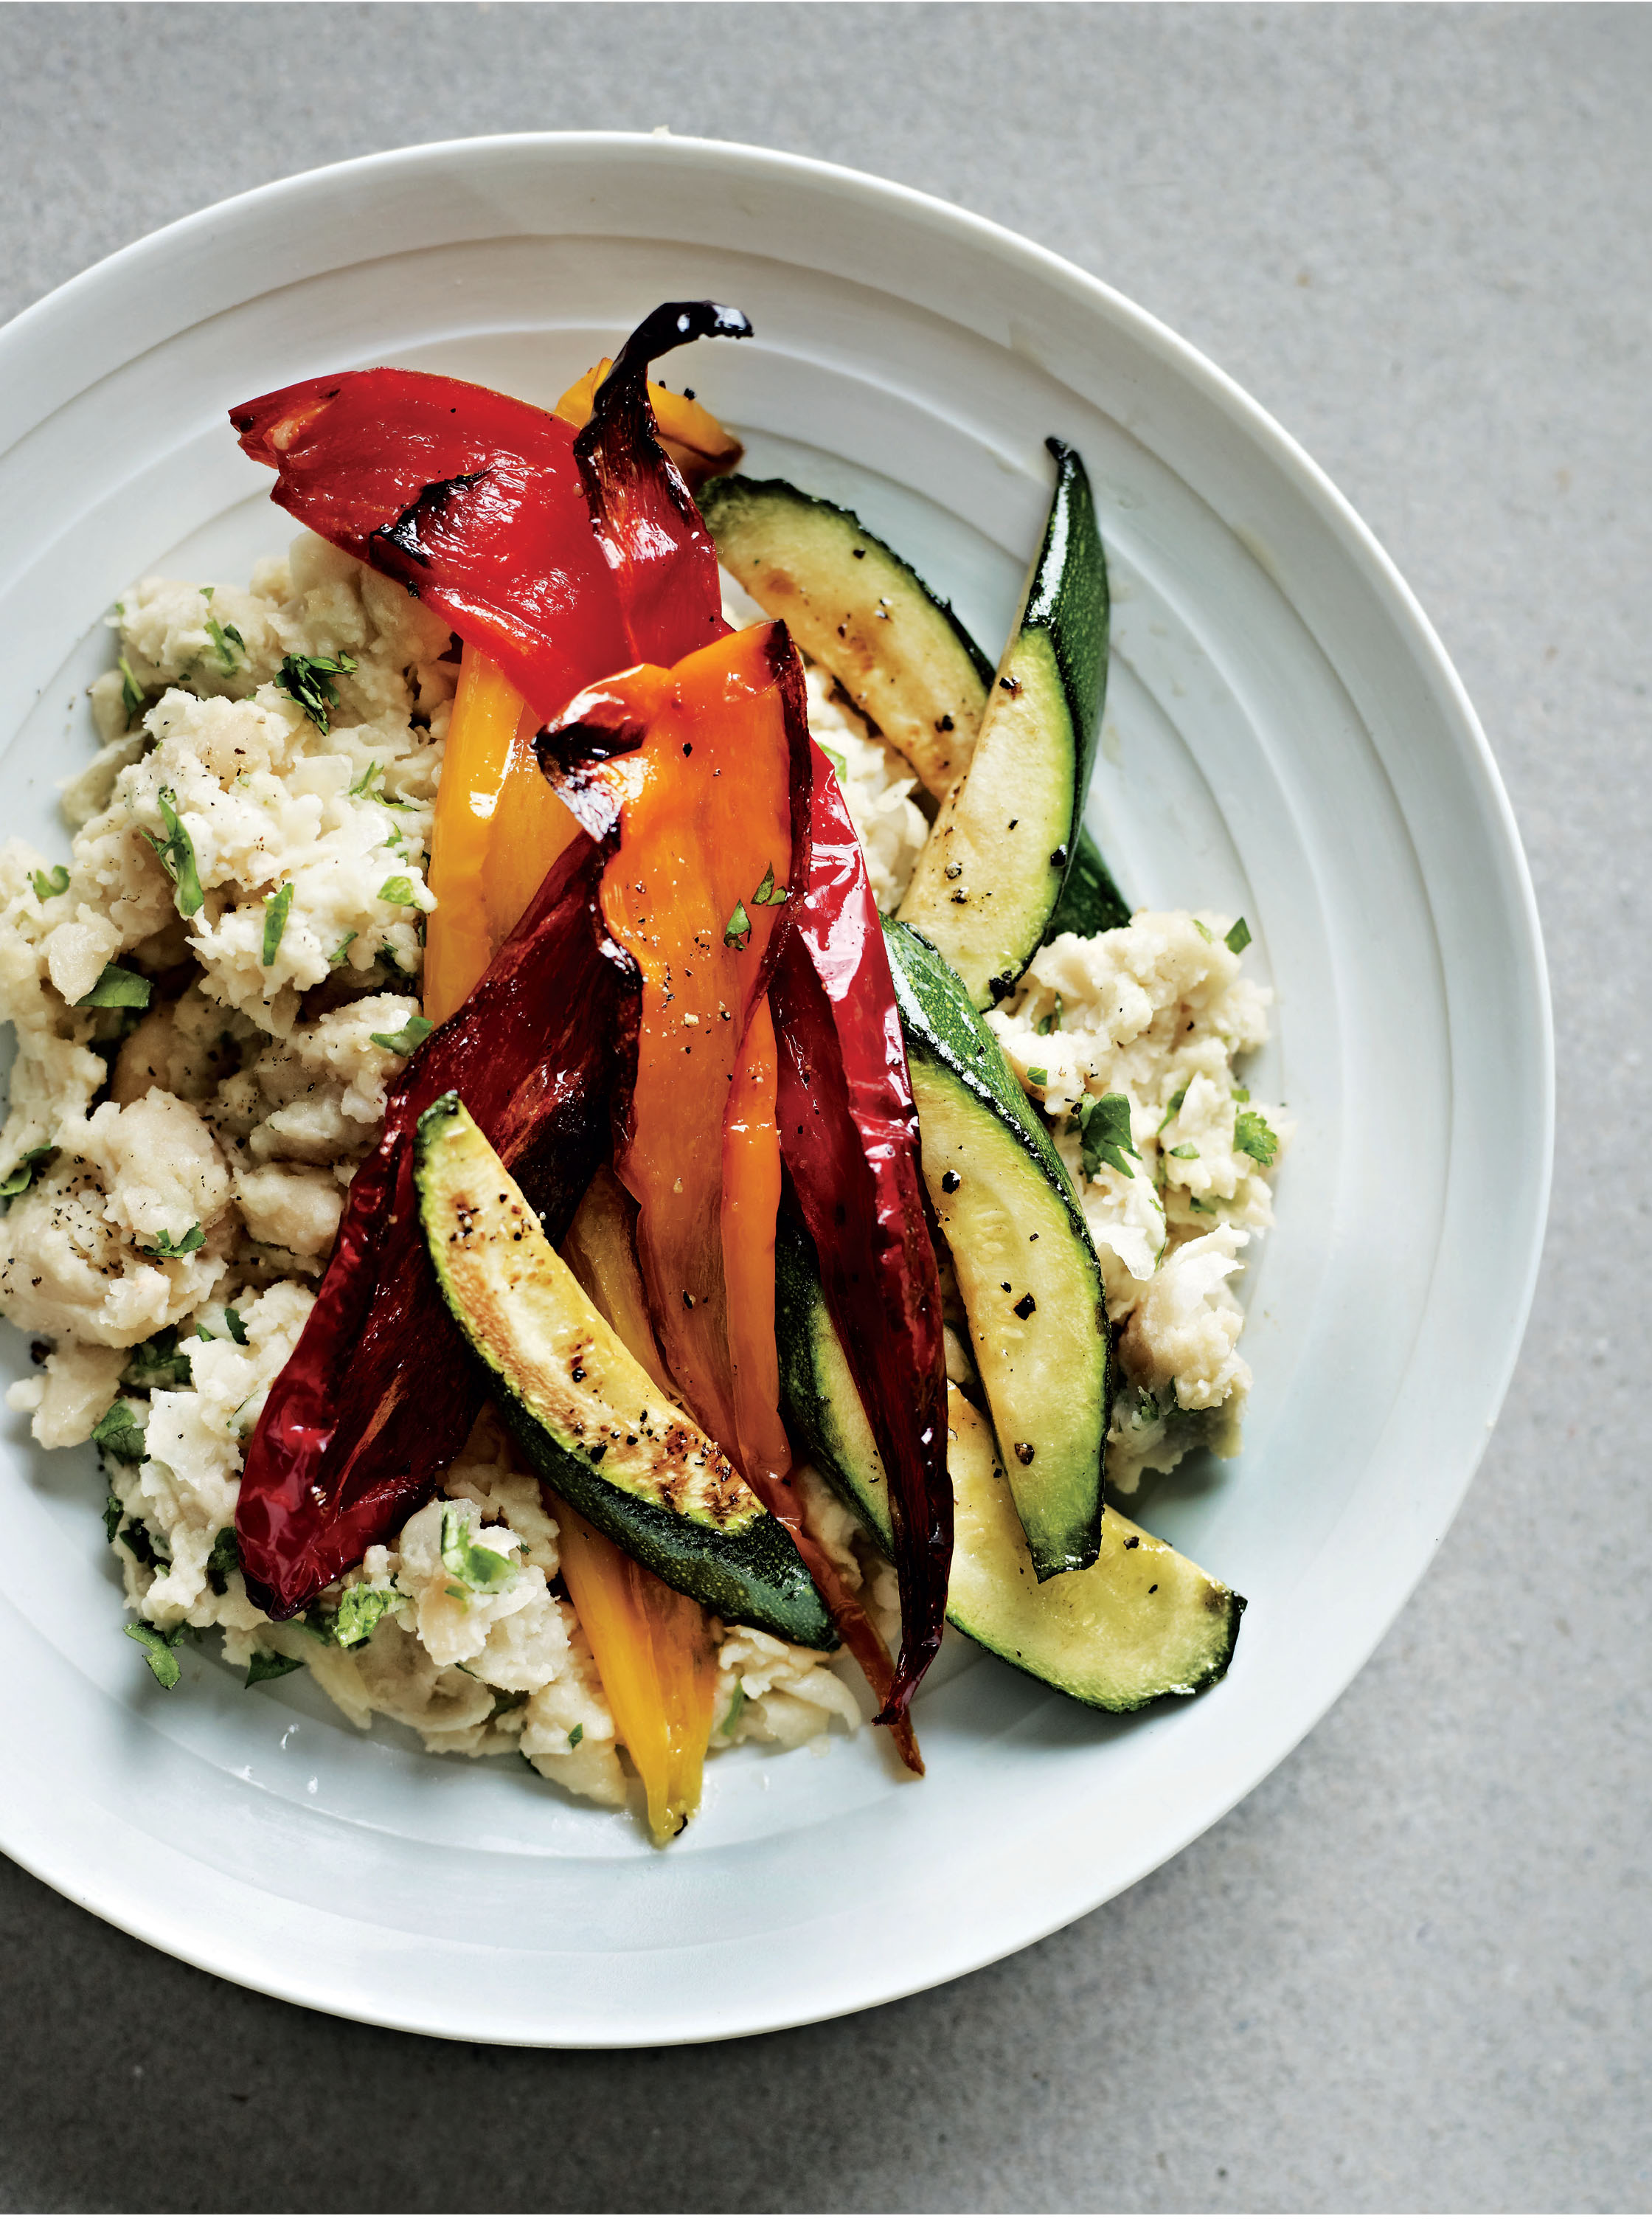 Roasted peppers with white bean mash